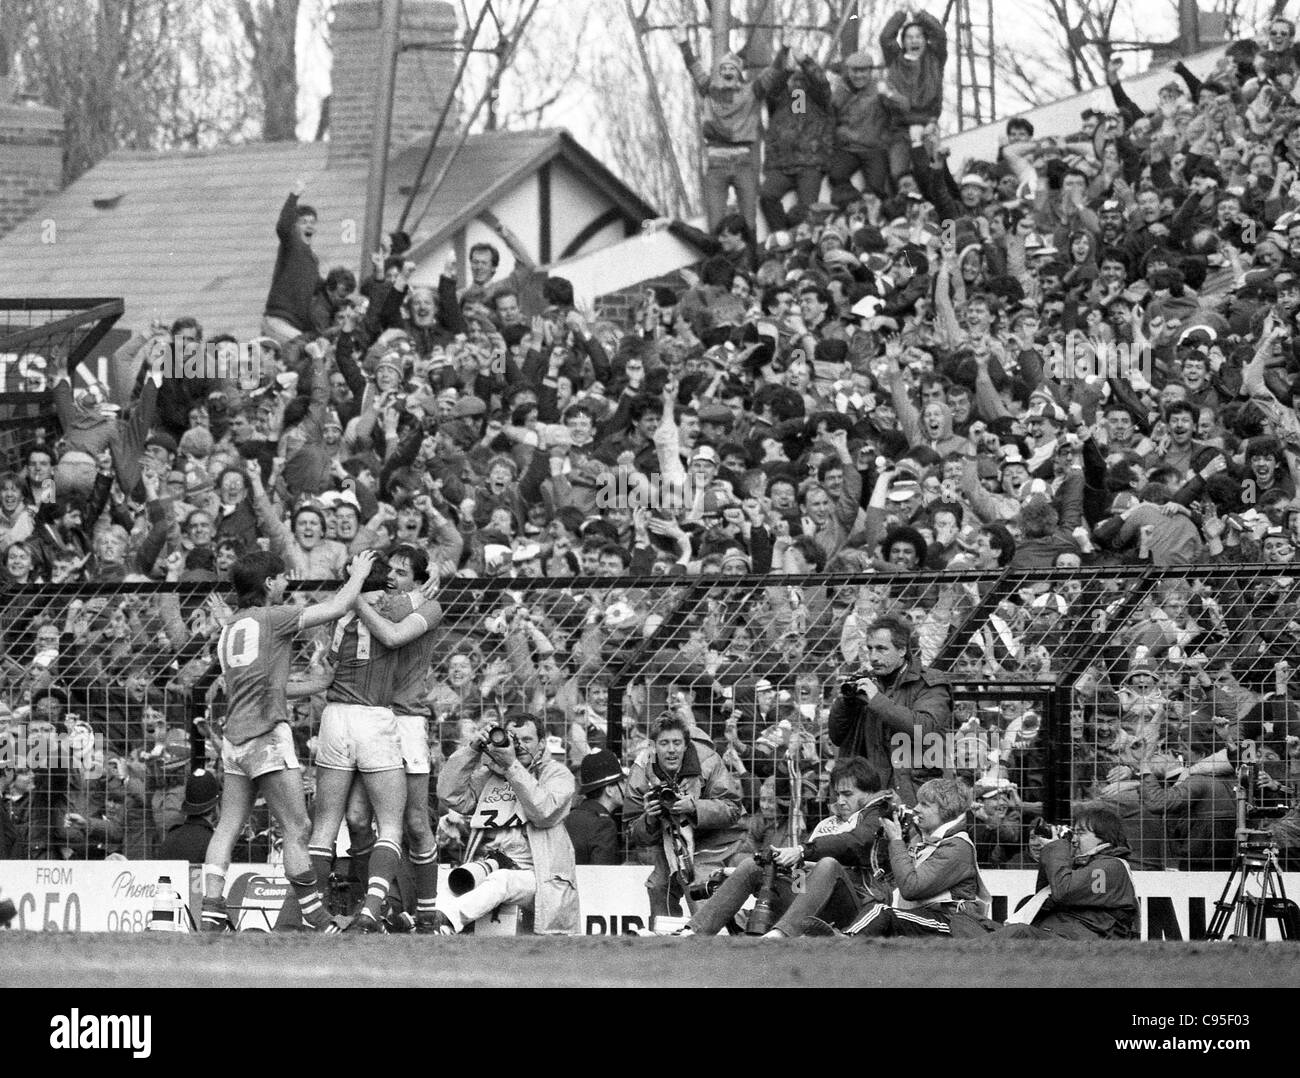 Everton V Luton Town FA Cup semi final at Villa Park 13/4/85 Everton players celebrate their winning goal in front - Stock Image